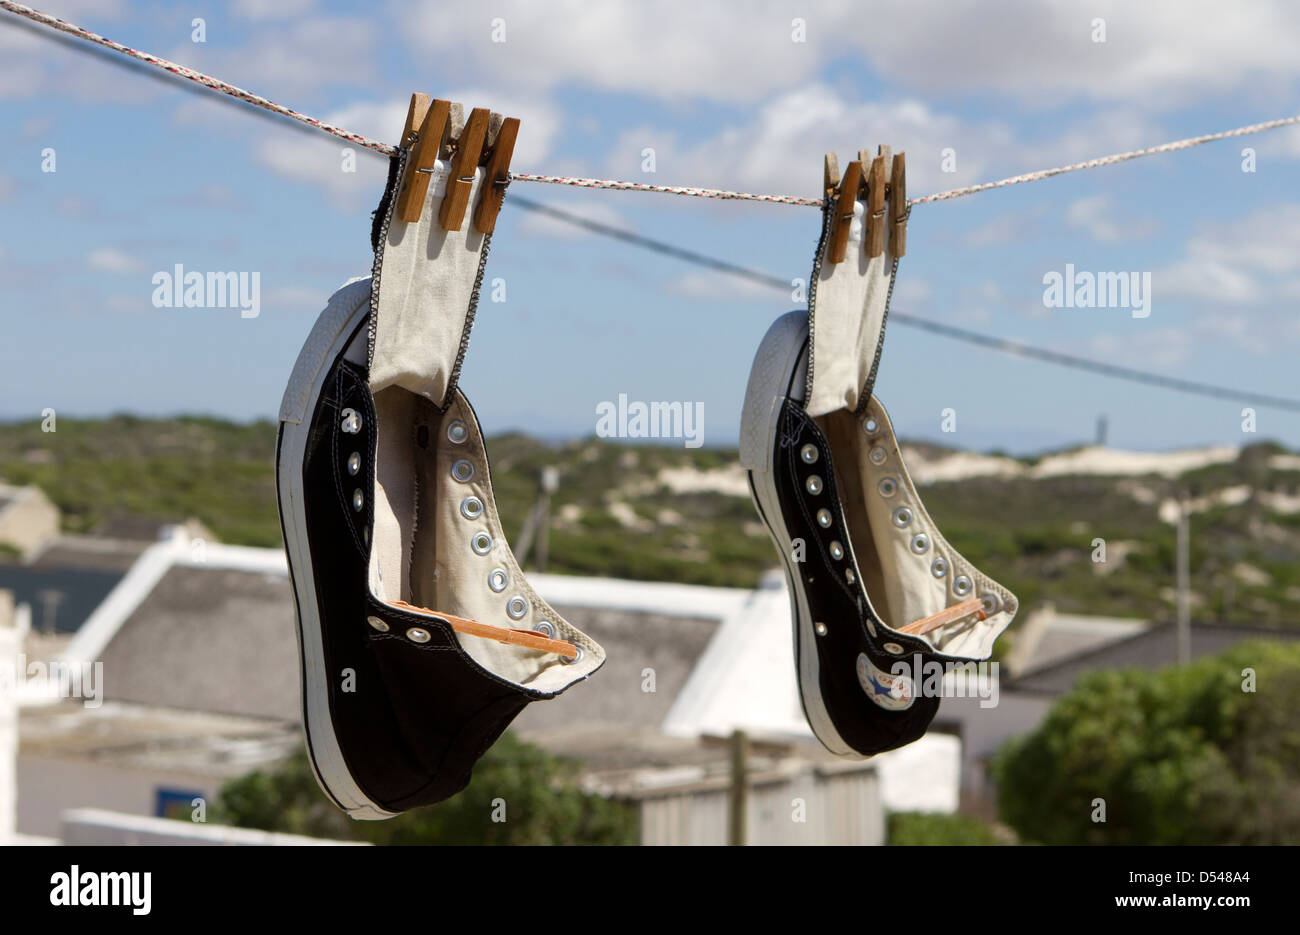 Converse All Stars hanging out to try. - Stock Image